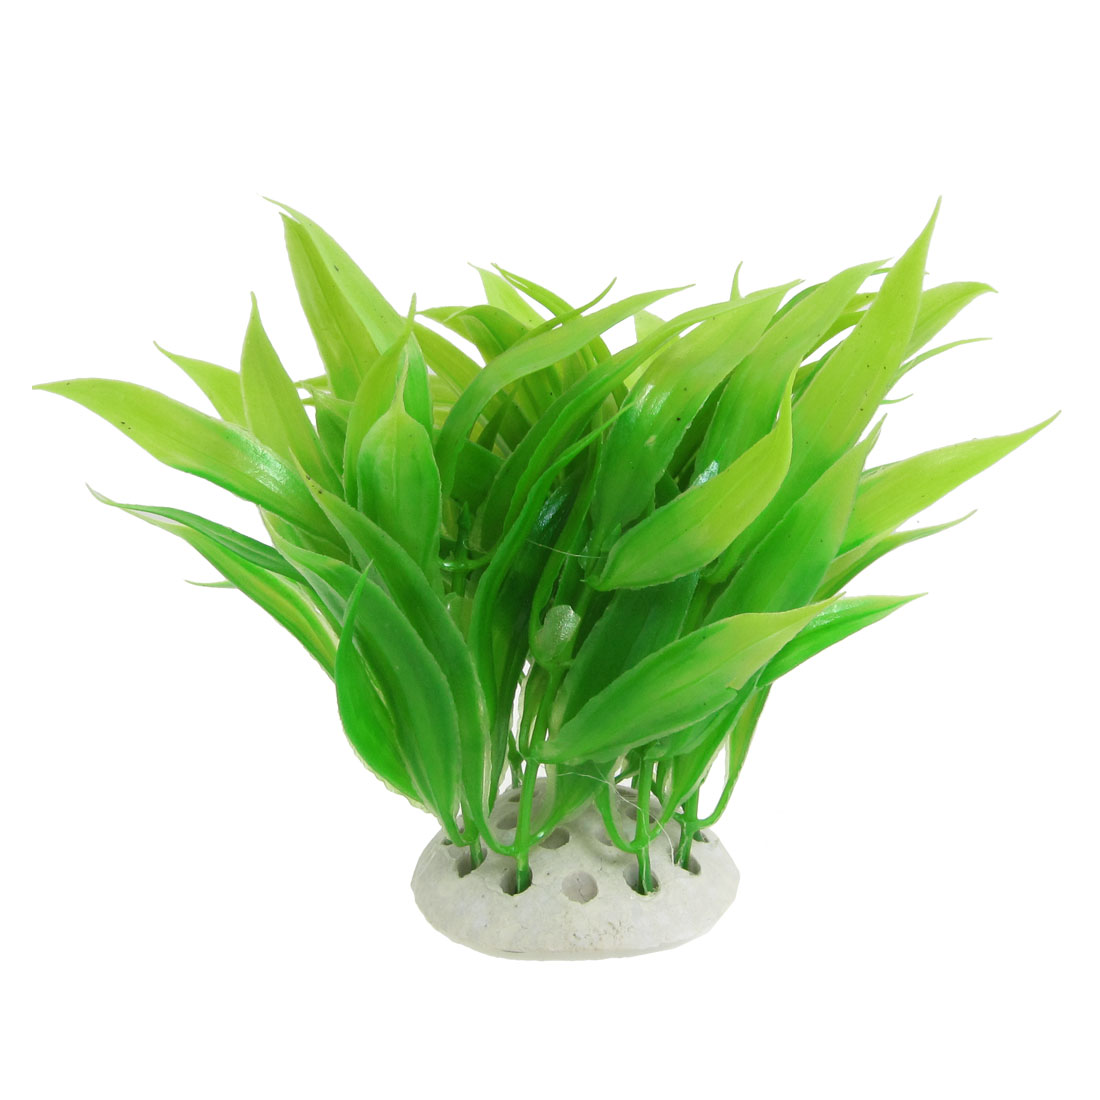 11cm High Green Aquatic Emulational Plants Decor for Fish Tank w Ceramic Base